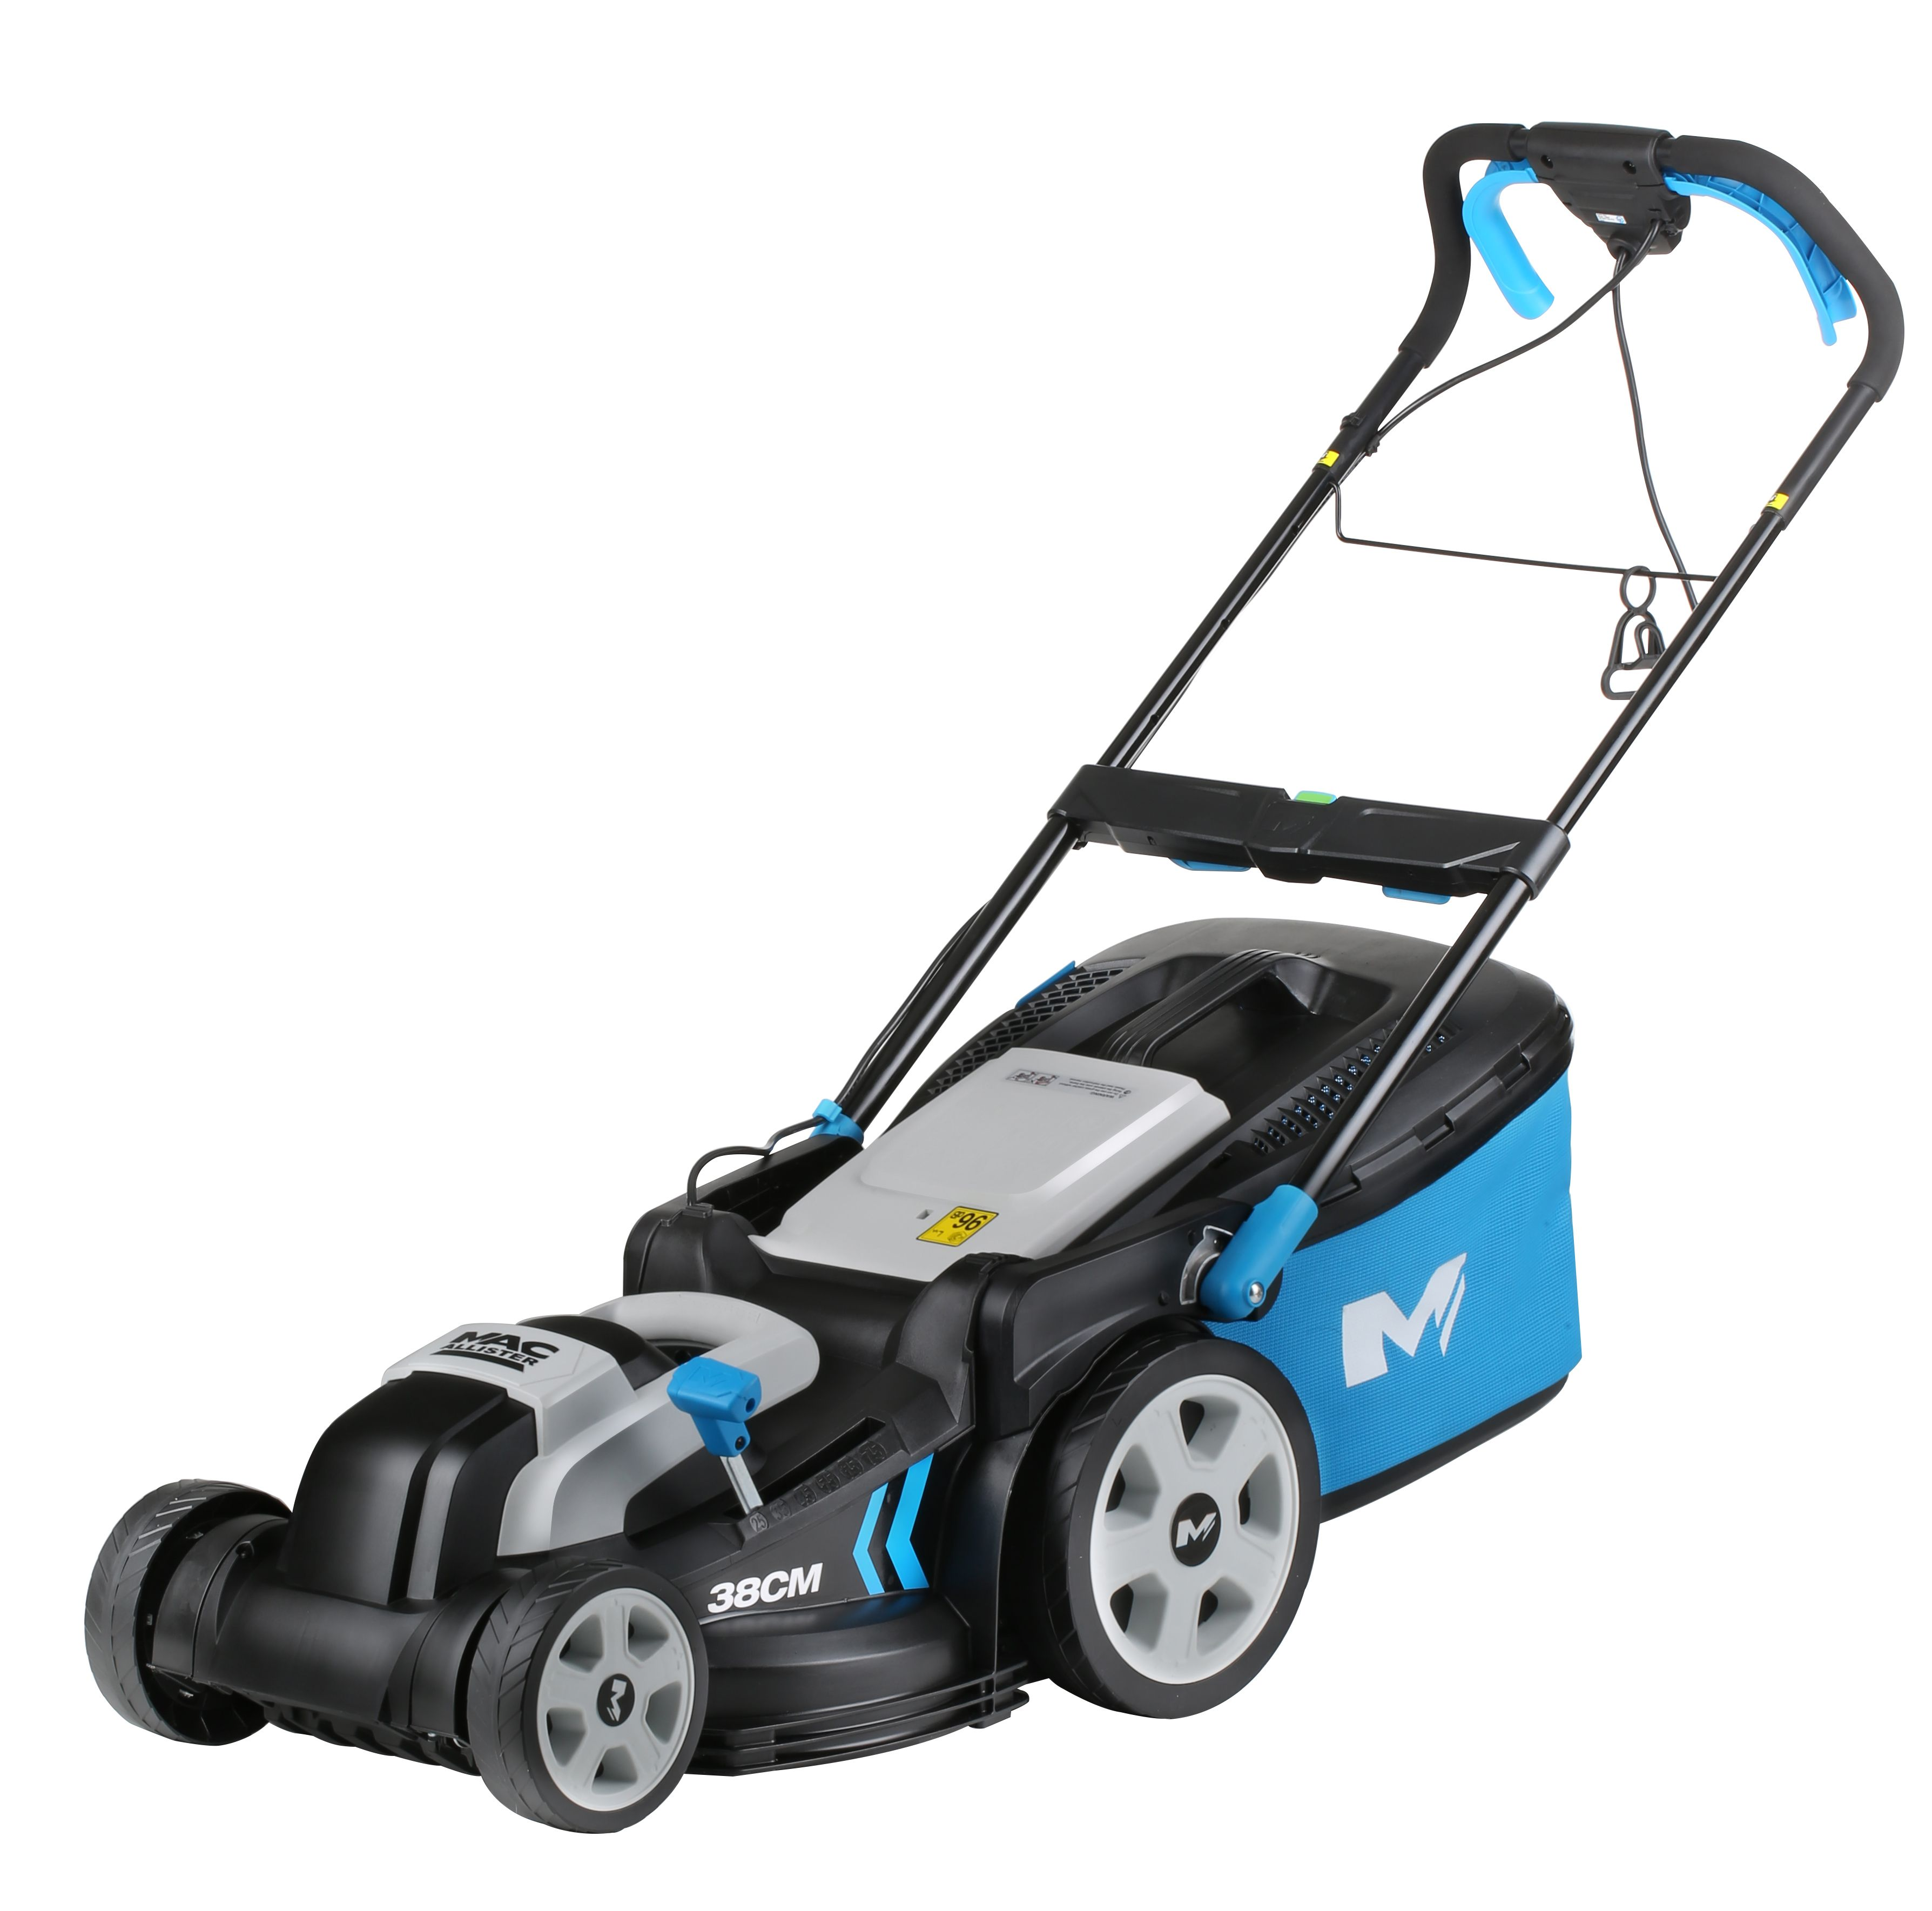 mac allister 1600w corded rotary lawnmower departments diy at b q. Black Bedroom Furniture Sets. Home Design Ideas